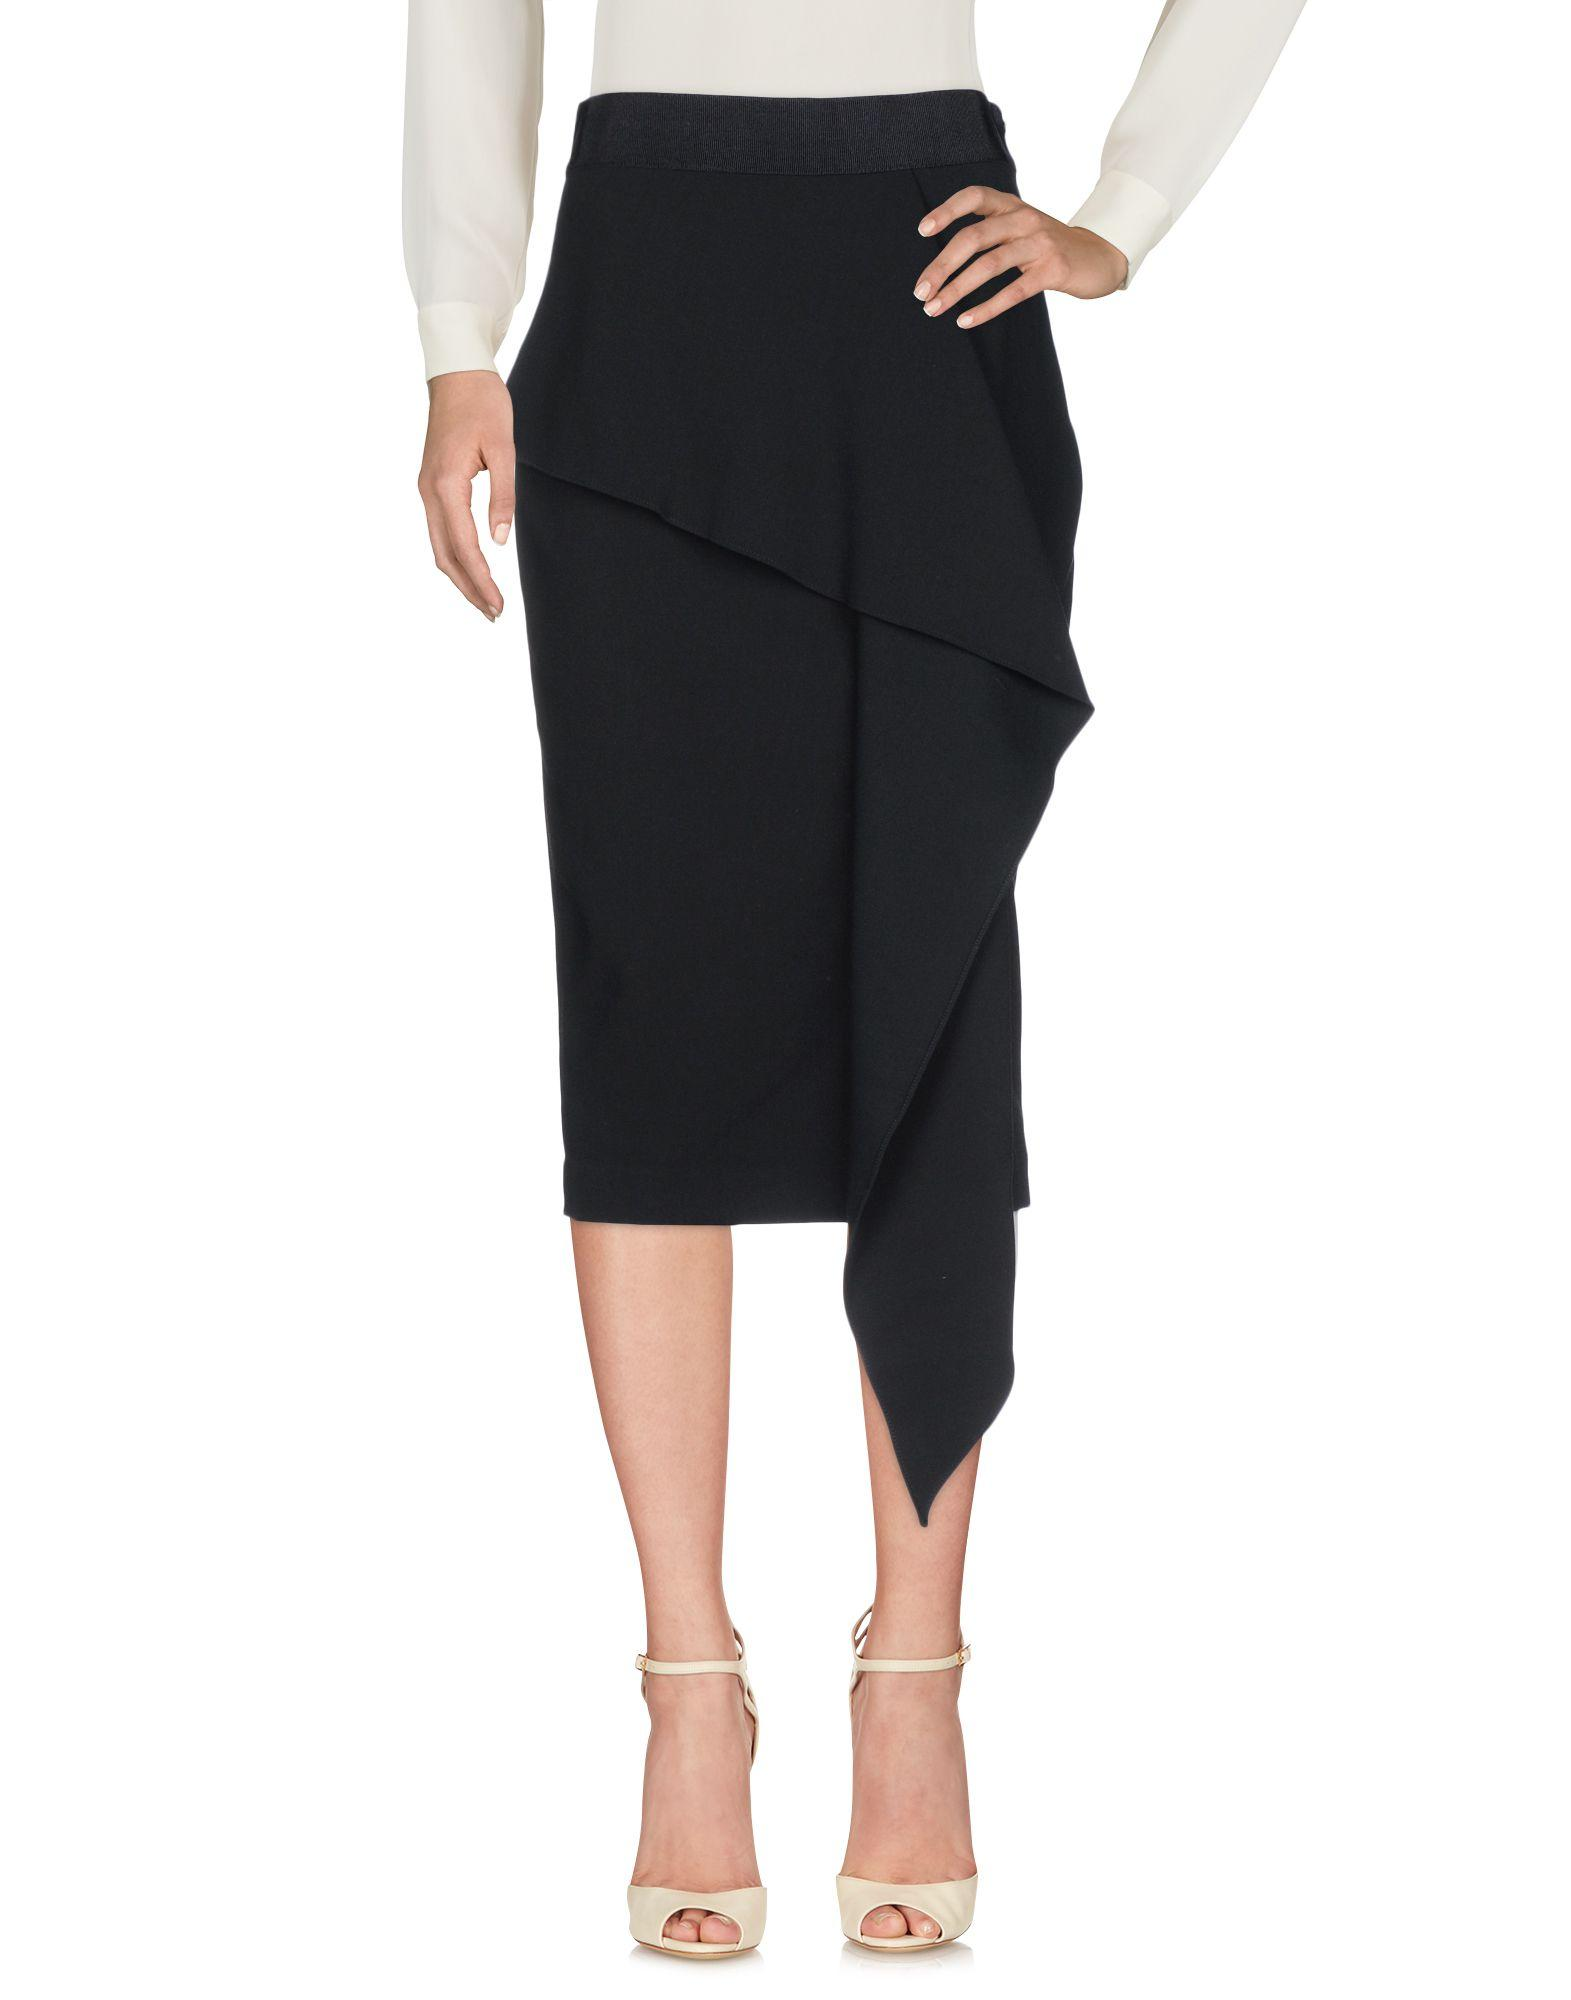 Milly 3/4 Length Skirts In Black